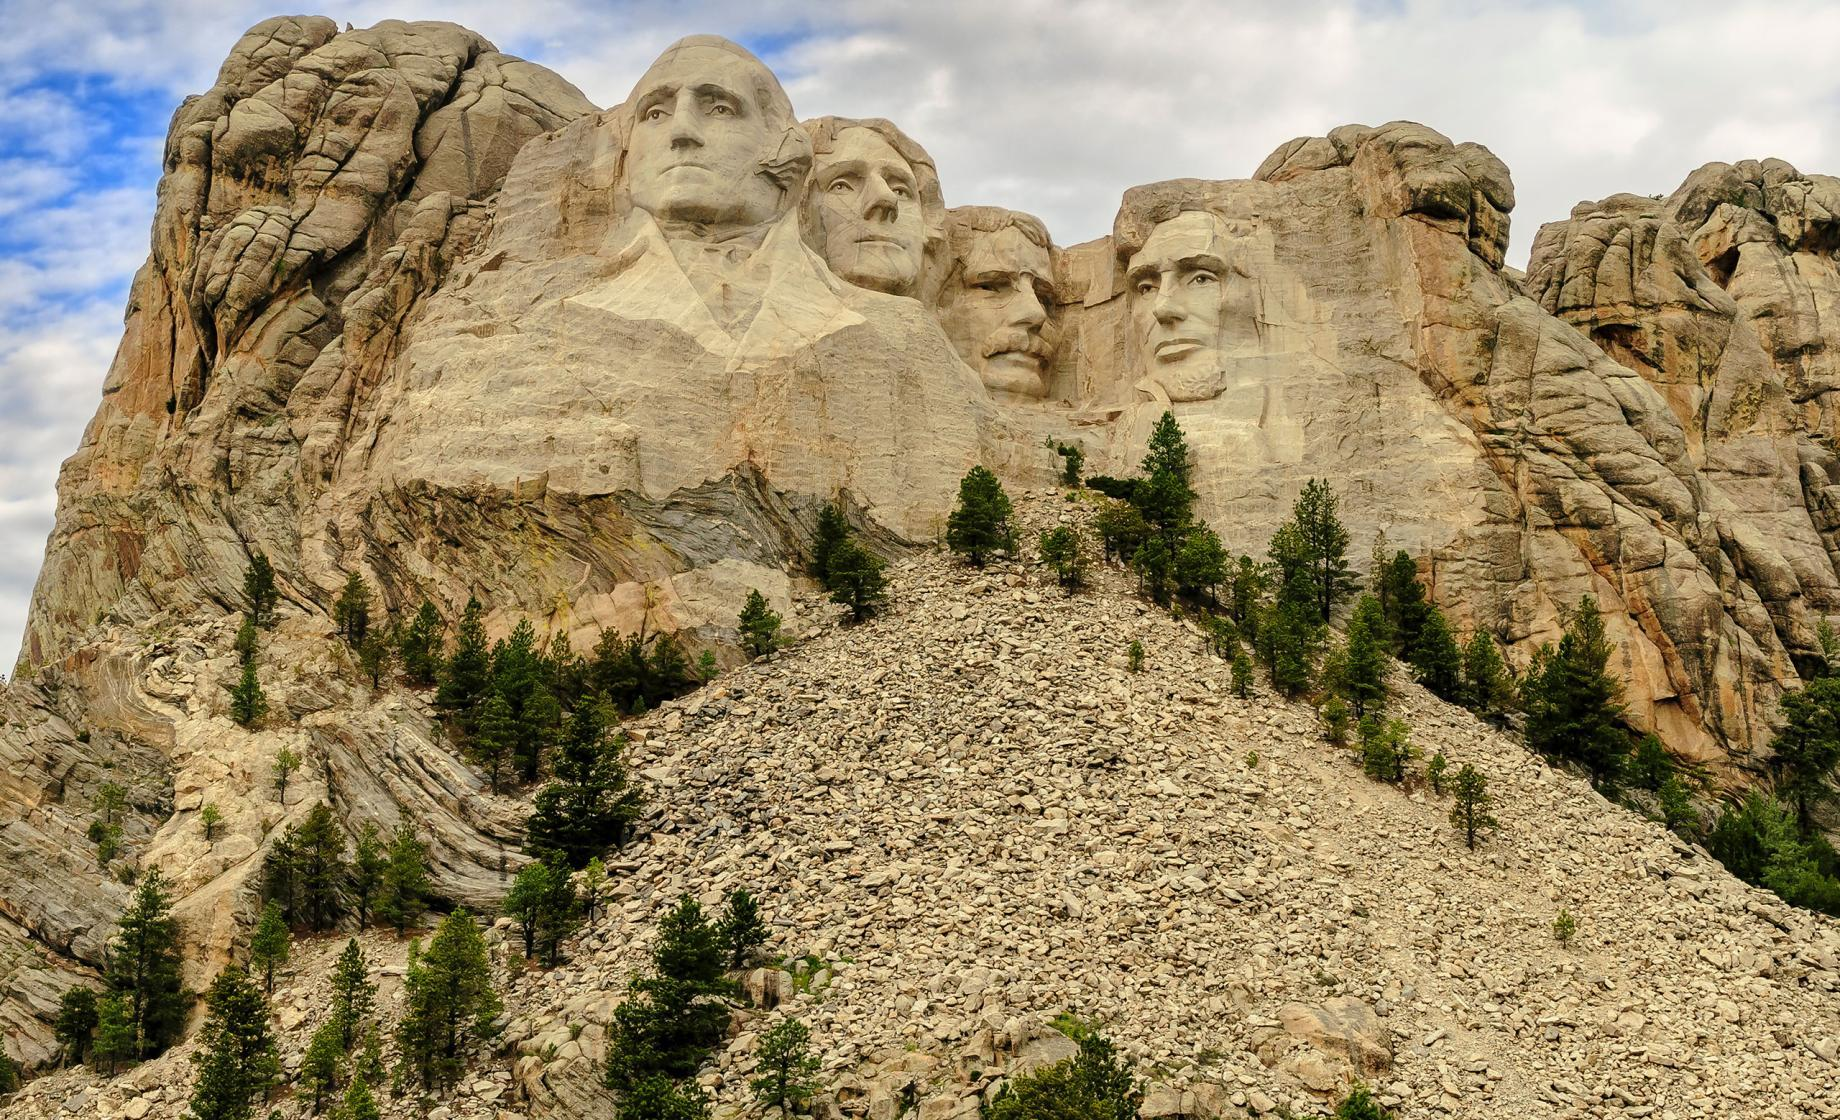 Mount Rushmore National Memorial near Keystone, South Dakota